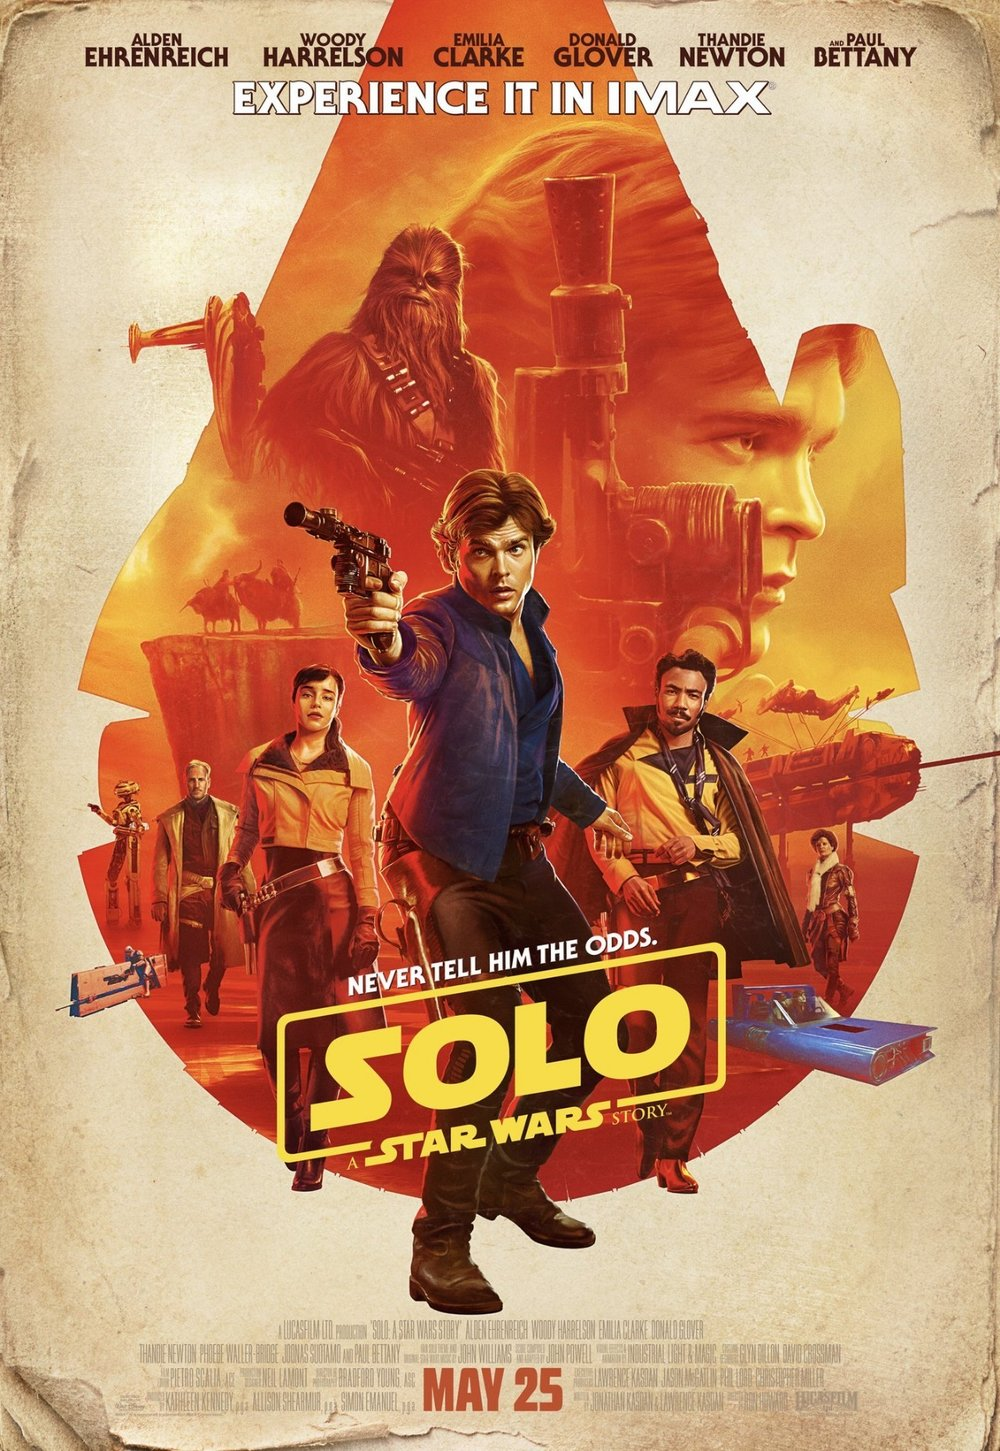 solo-star-wars-story-imax-poster-GT